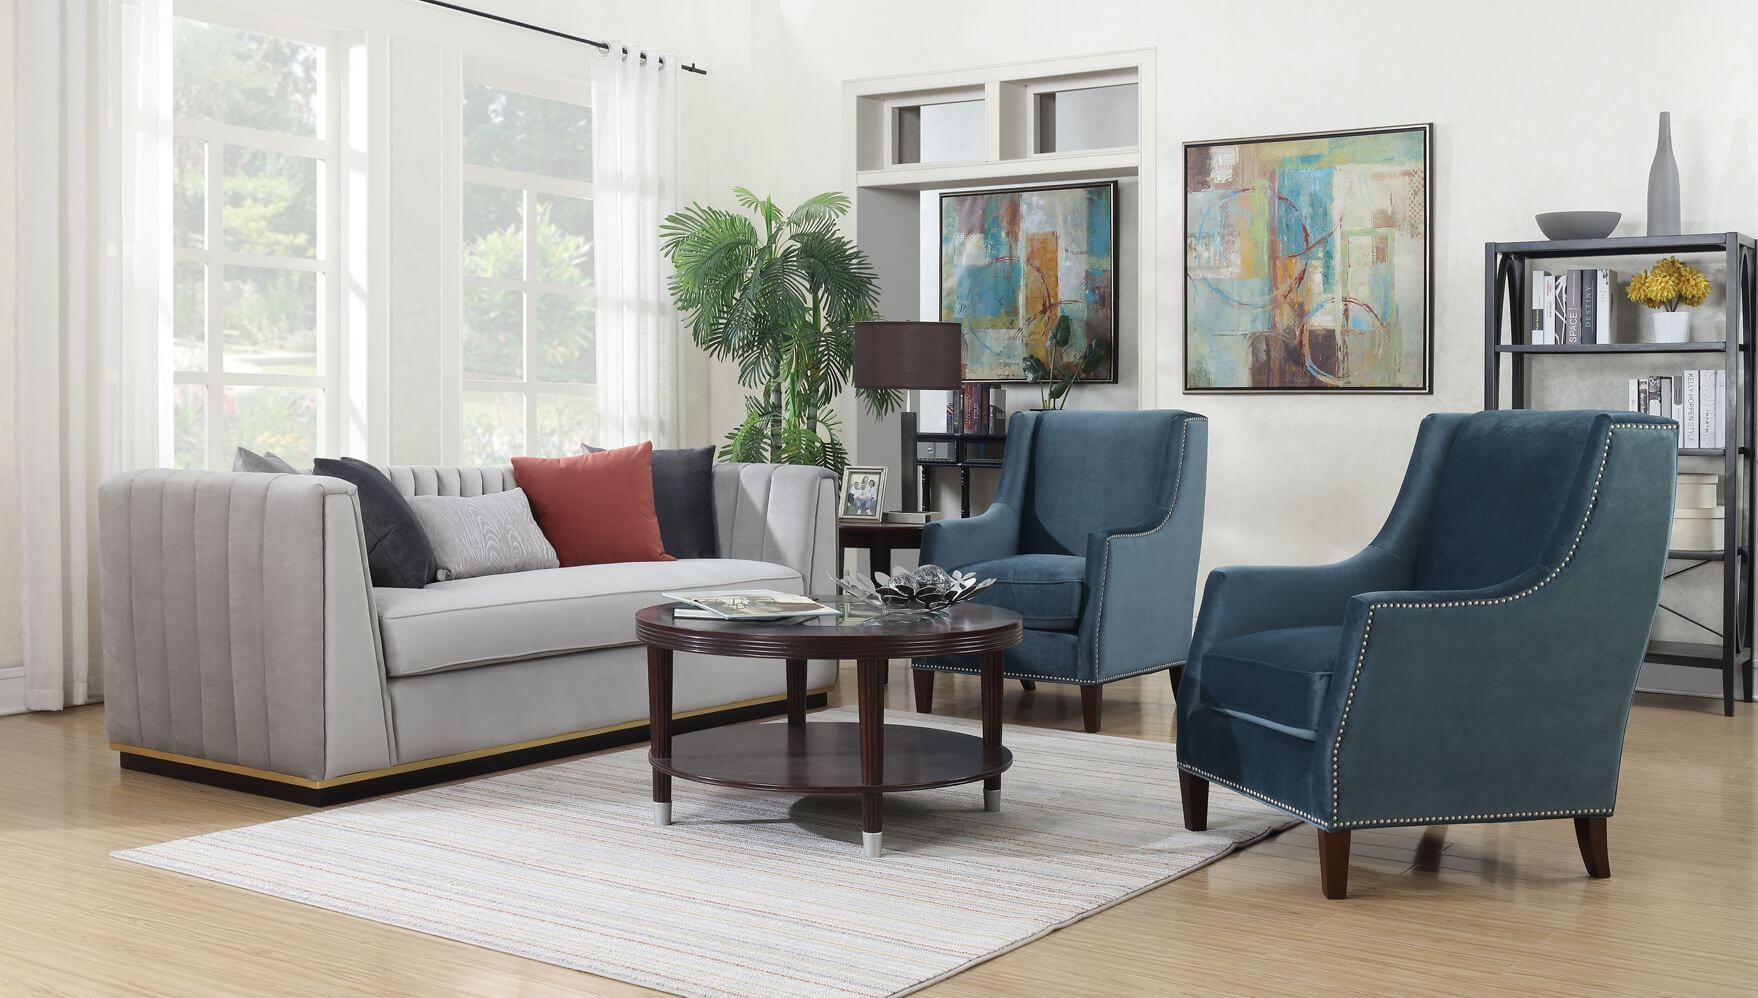 Dove Living Room Collection | Sofa, loveseat set, Living ...